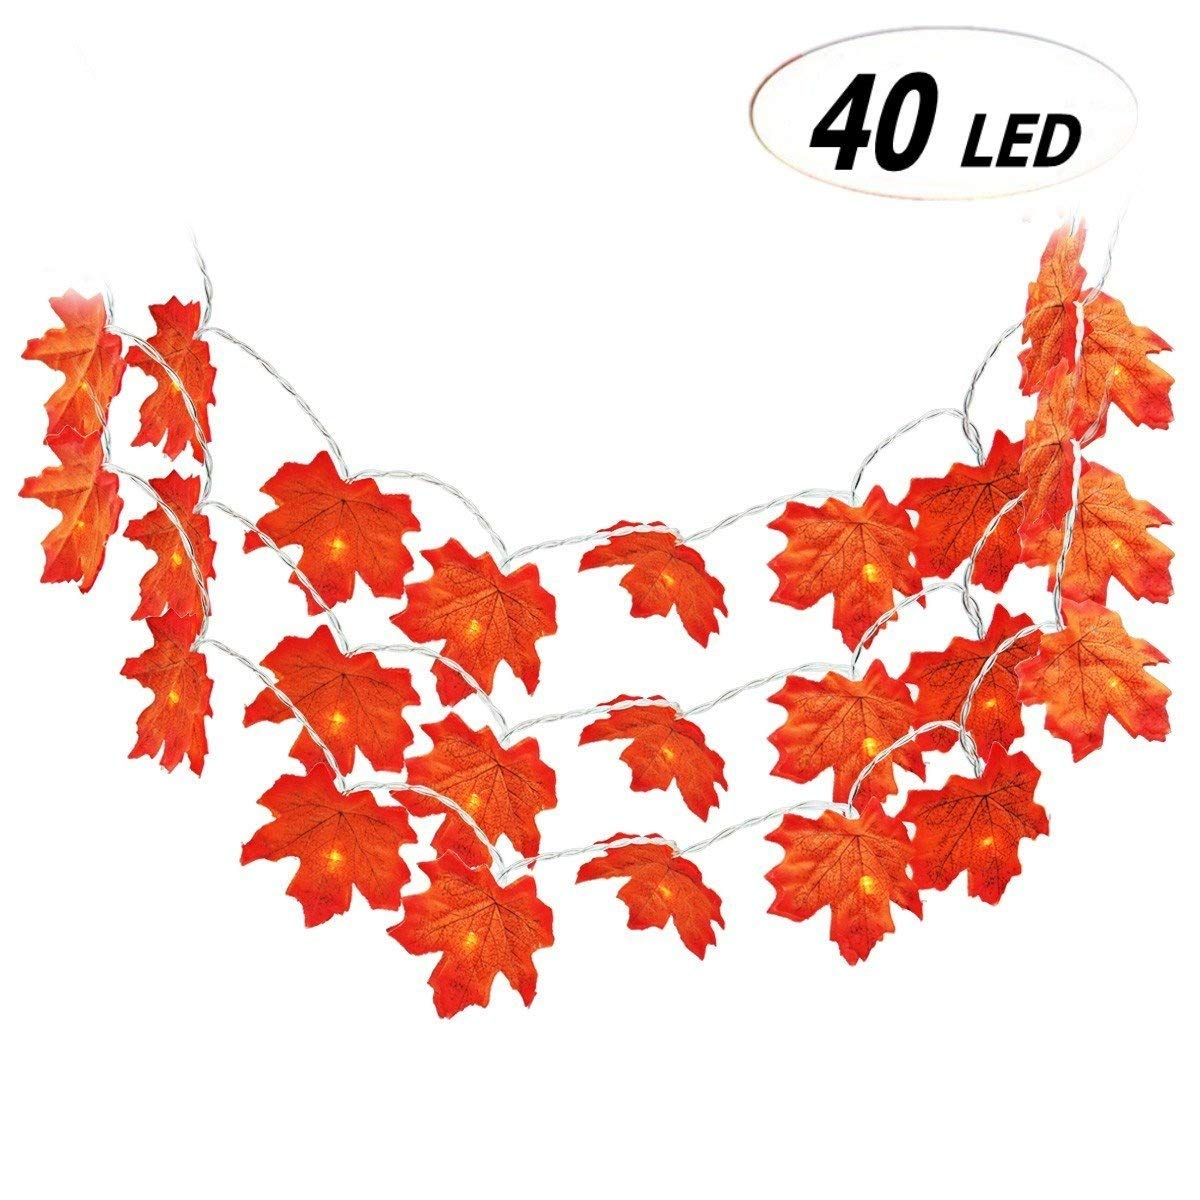 Fall Maple Leaf Decorations Light, Keepack Autumn Garland 4M 40 Lights Battery Powered Fall Garland Maple Leaf Lights